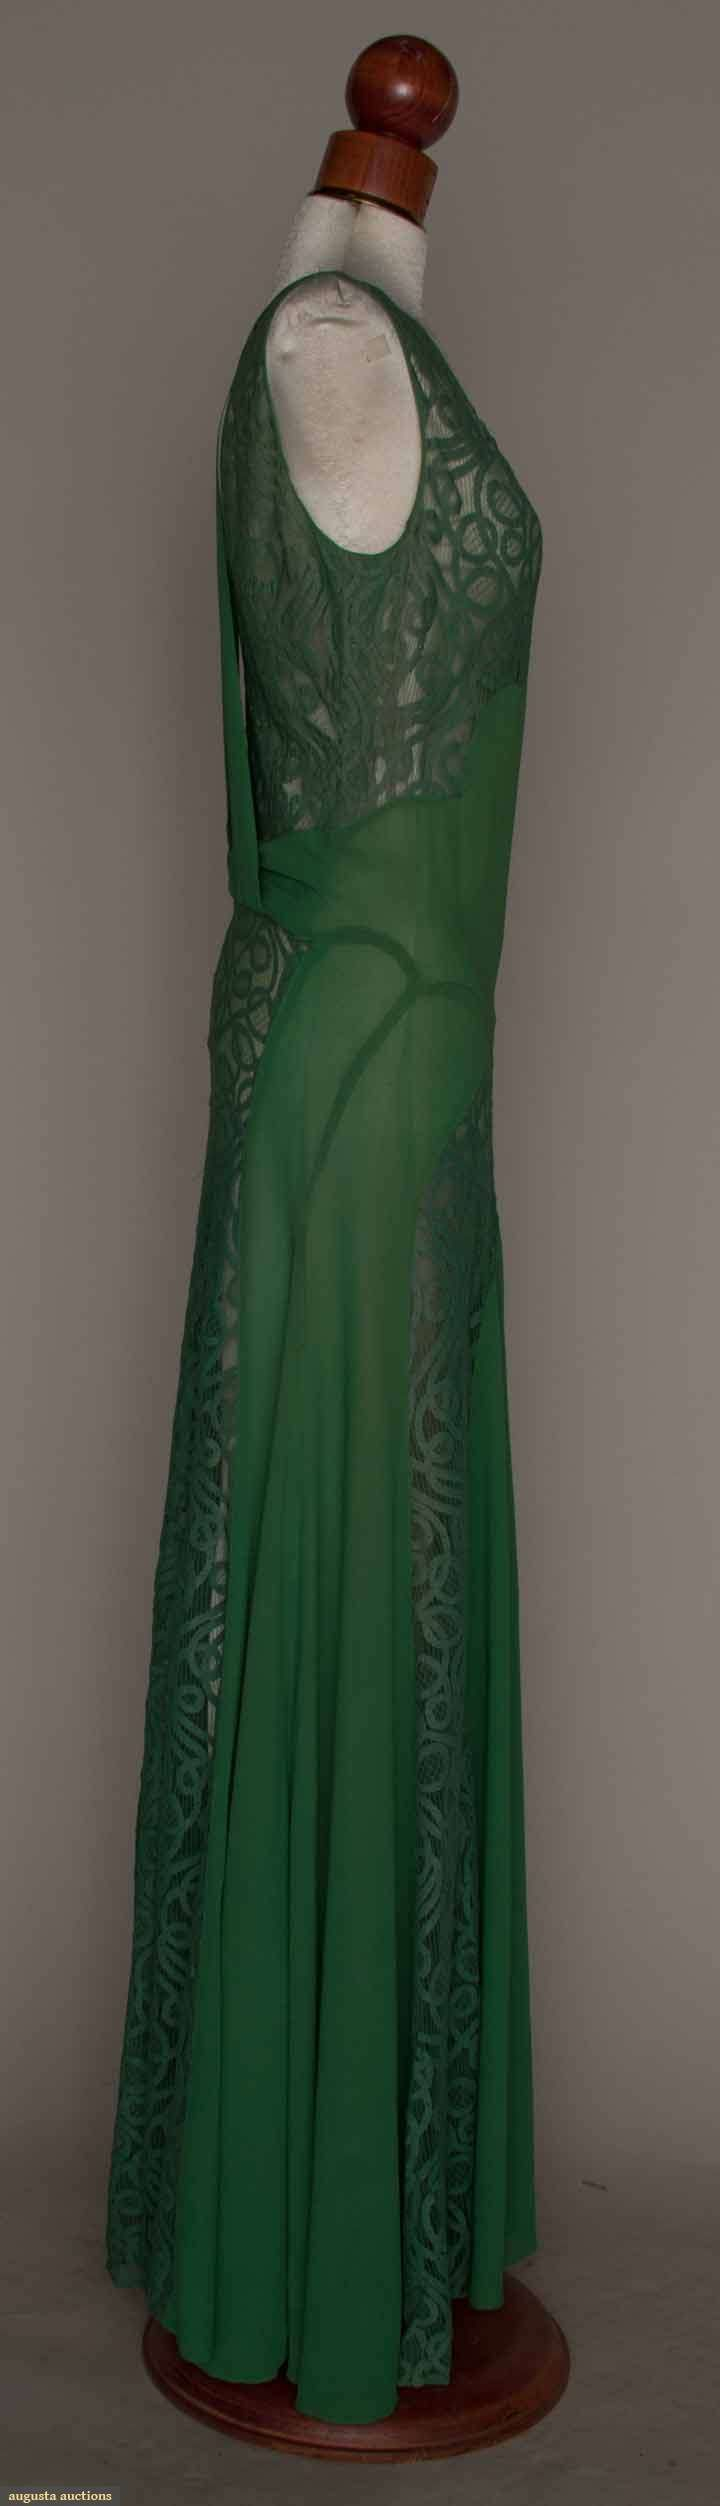 GREEN SILK & LACE GOWN, MID 1930s Silk crepe, bias piecing, sleeveless, CB & F panels of green tape lace, attached crepe back belt & halter. Sideway